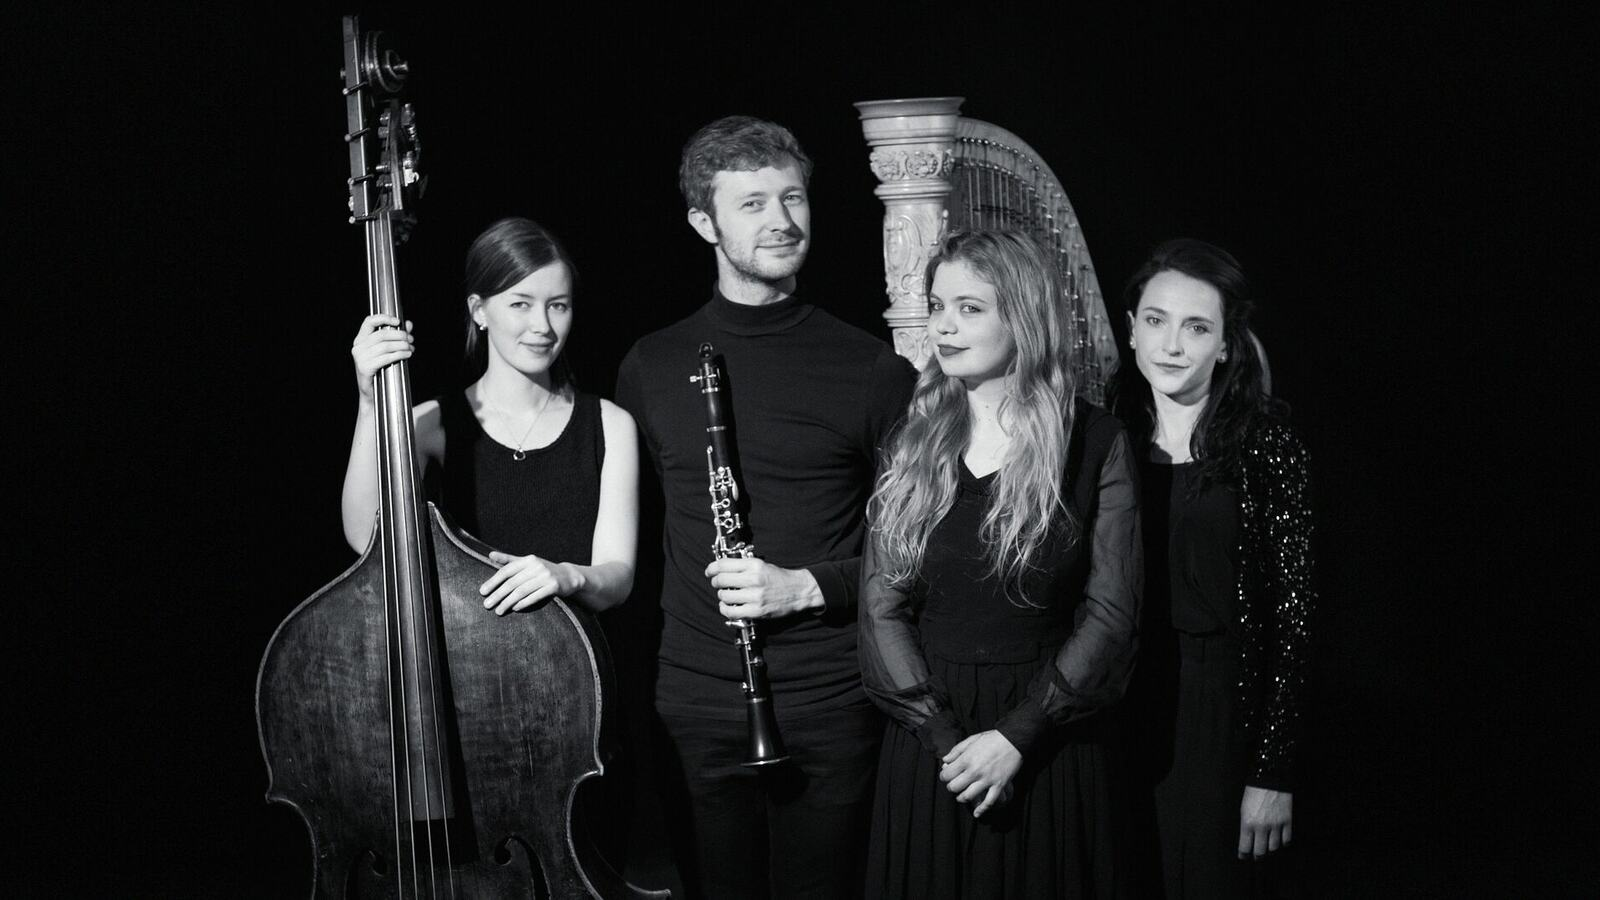 Musicians with double base, clarinet and harp